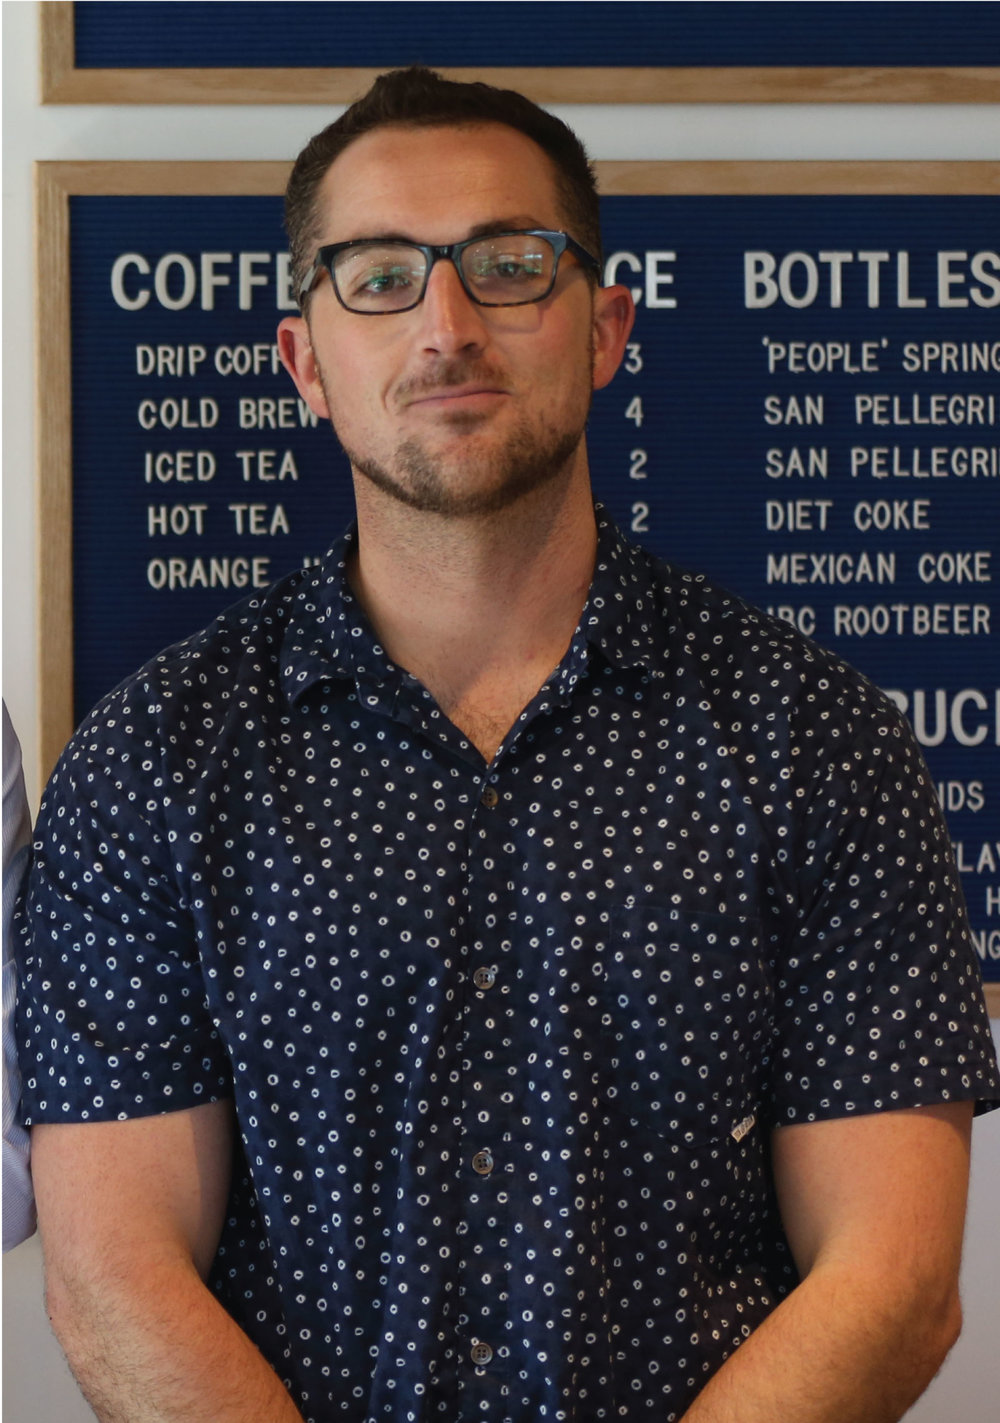 NICK GRADINGER | Brand Manager, Co-Founder